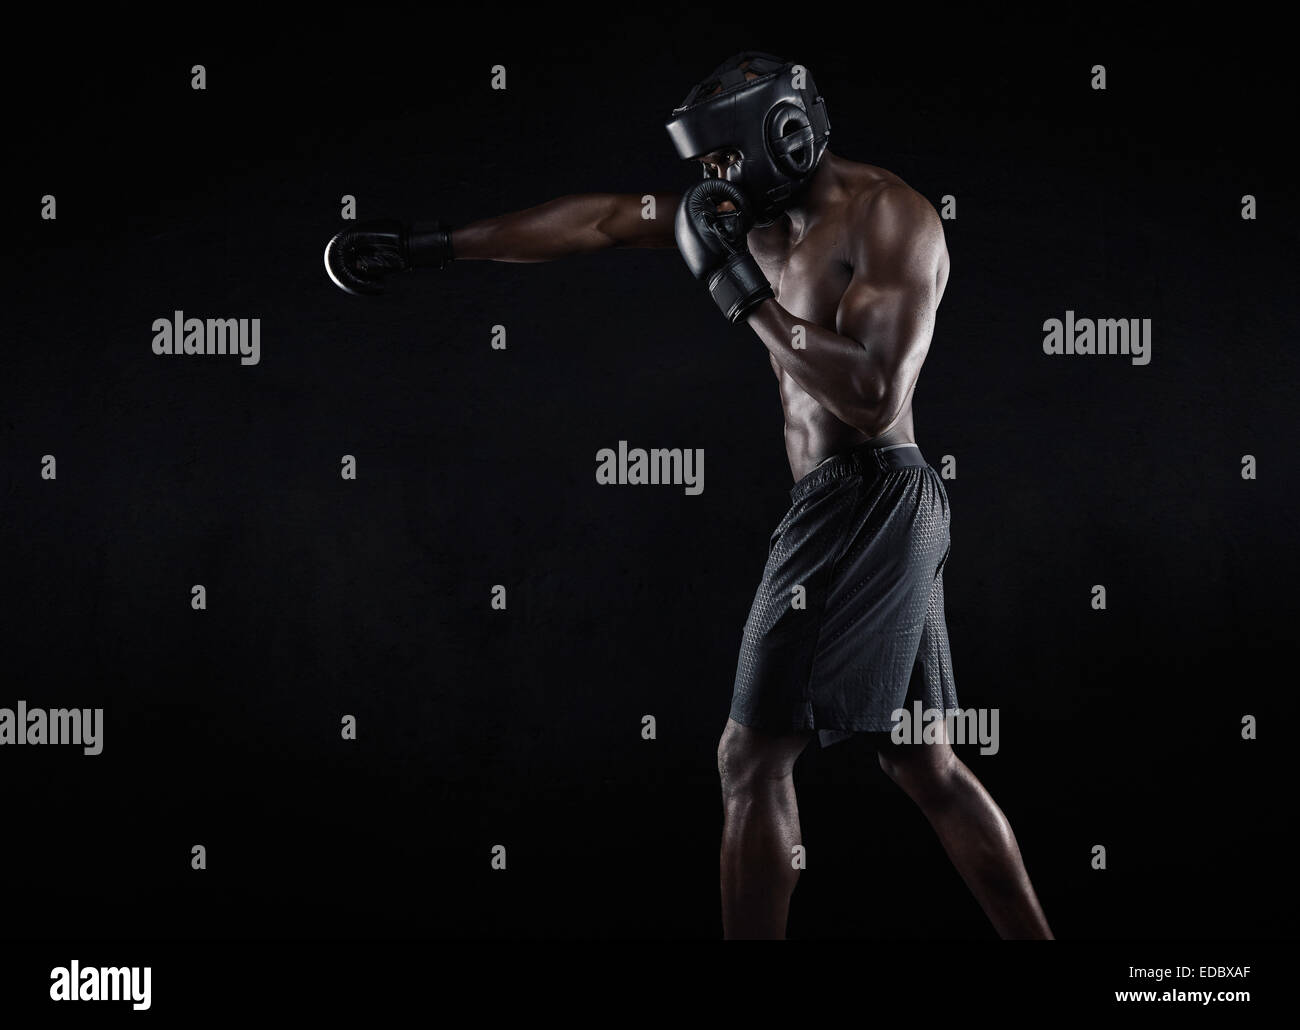 Side view of muscular man boxing on black background. Afro American young male boxer practicing shadow boxing. - Stock Image